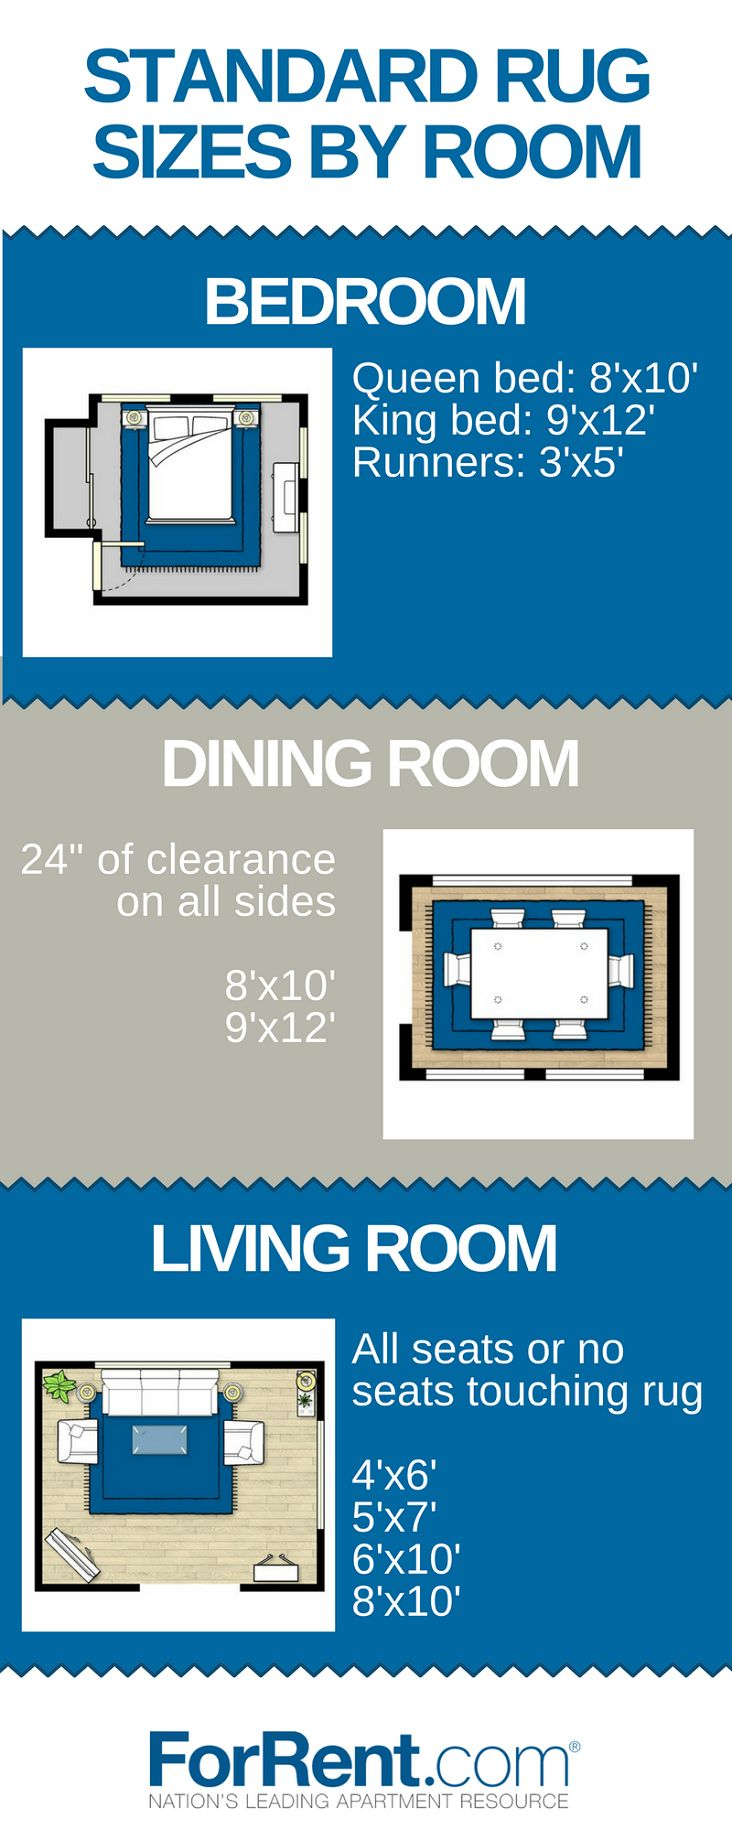 Standard Rug Sizes by Room @aptsforrent